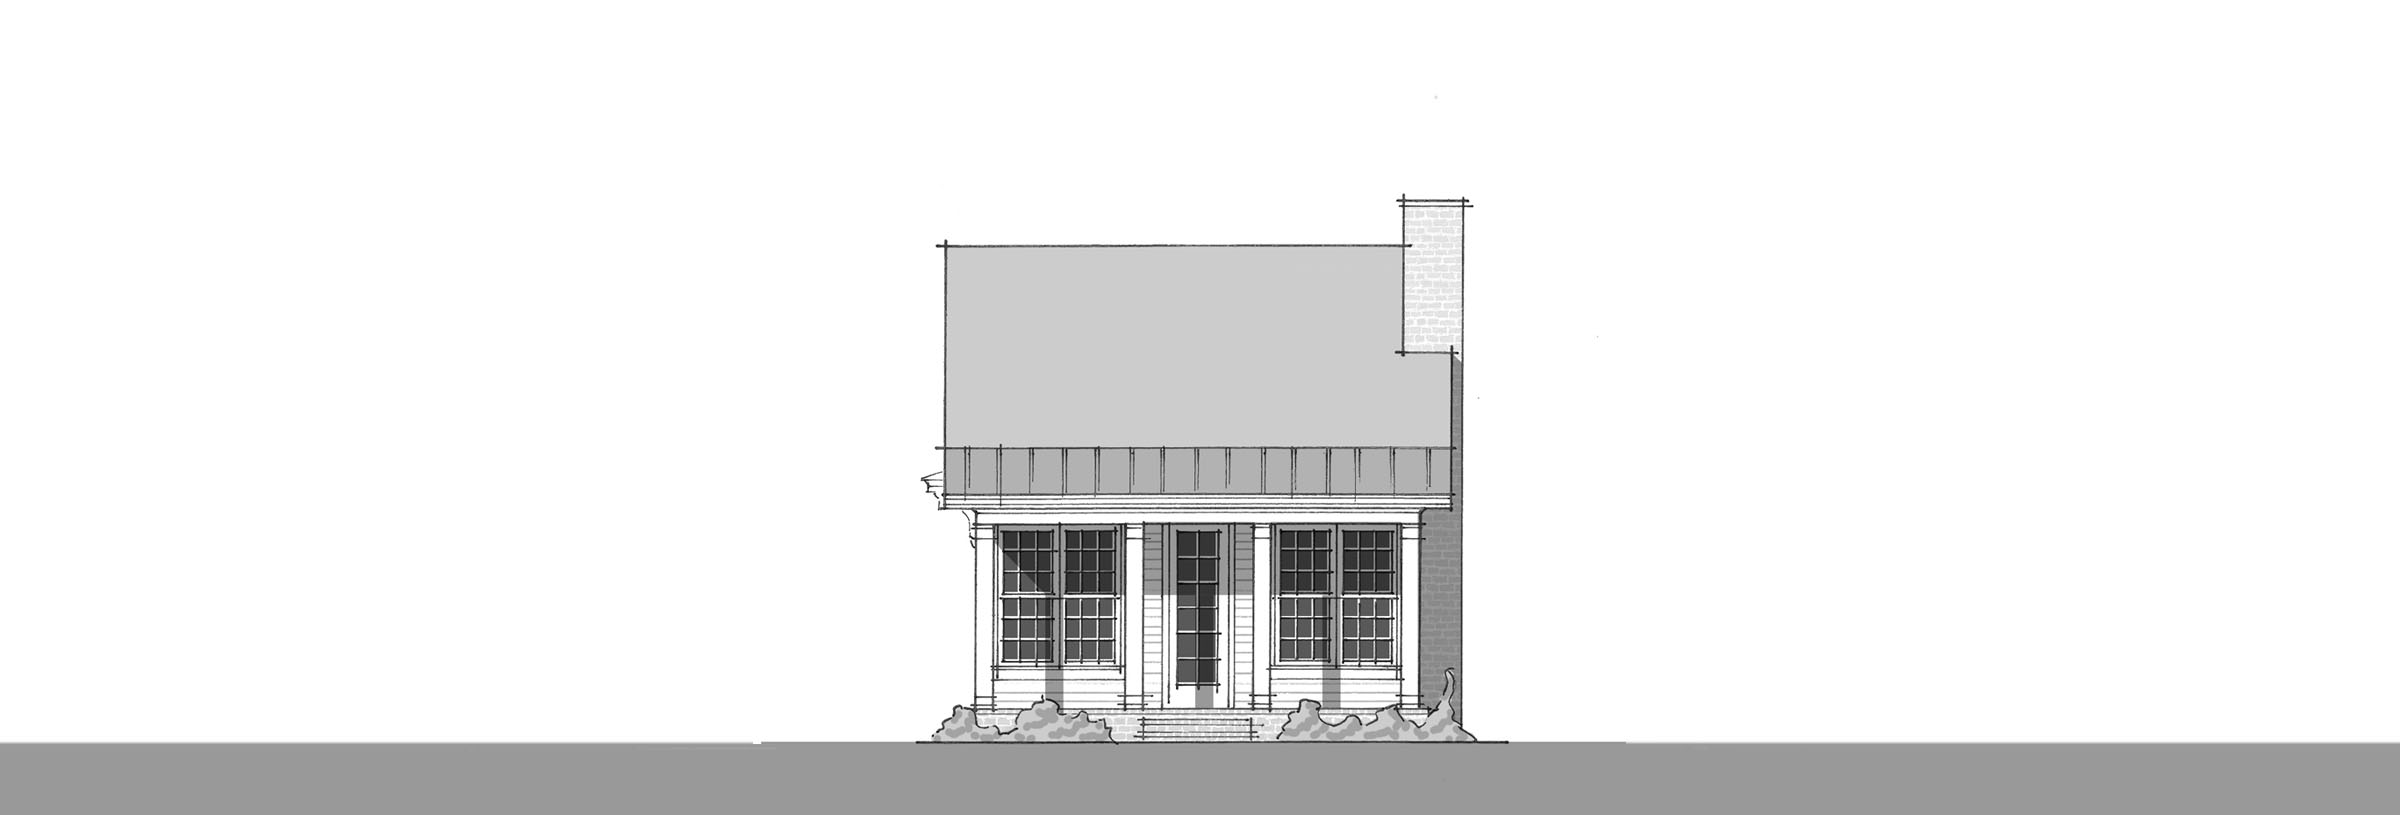 Cates Creek - Front Elevation_2400